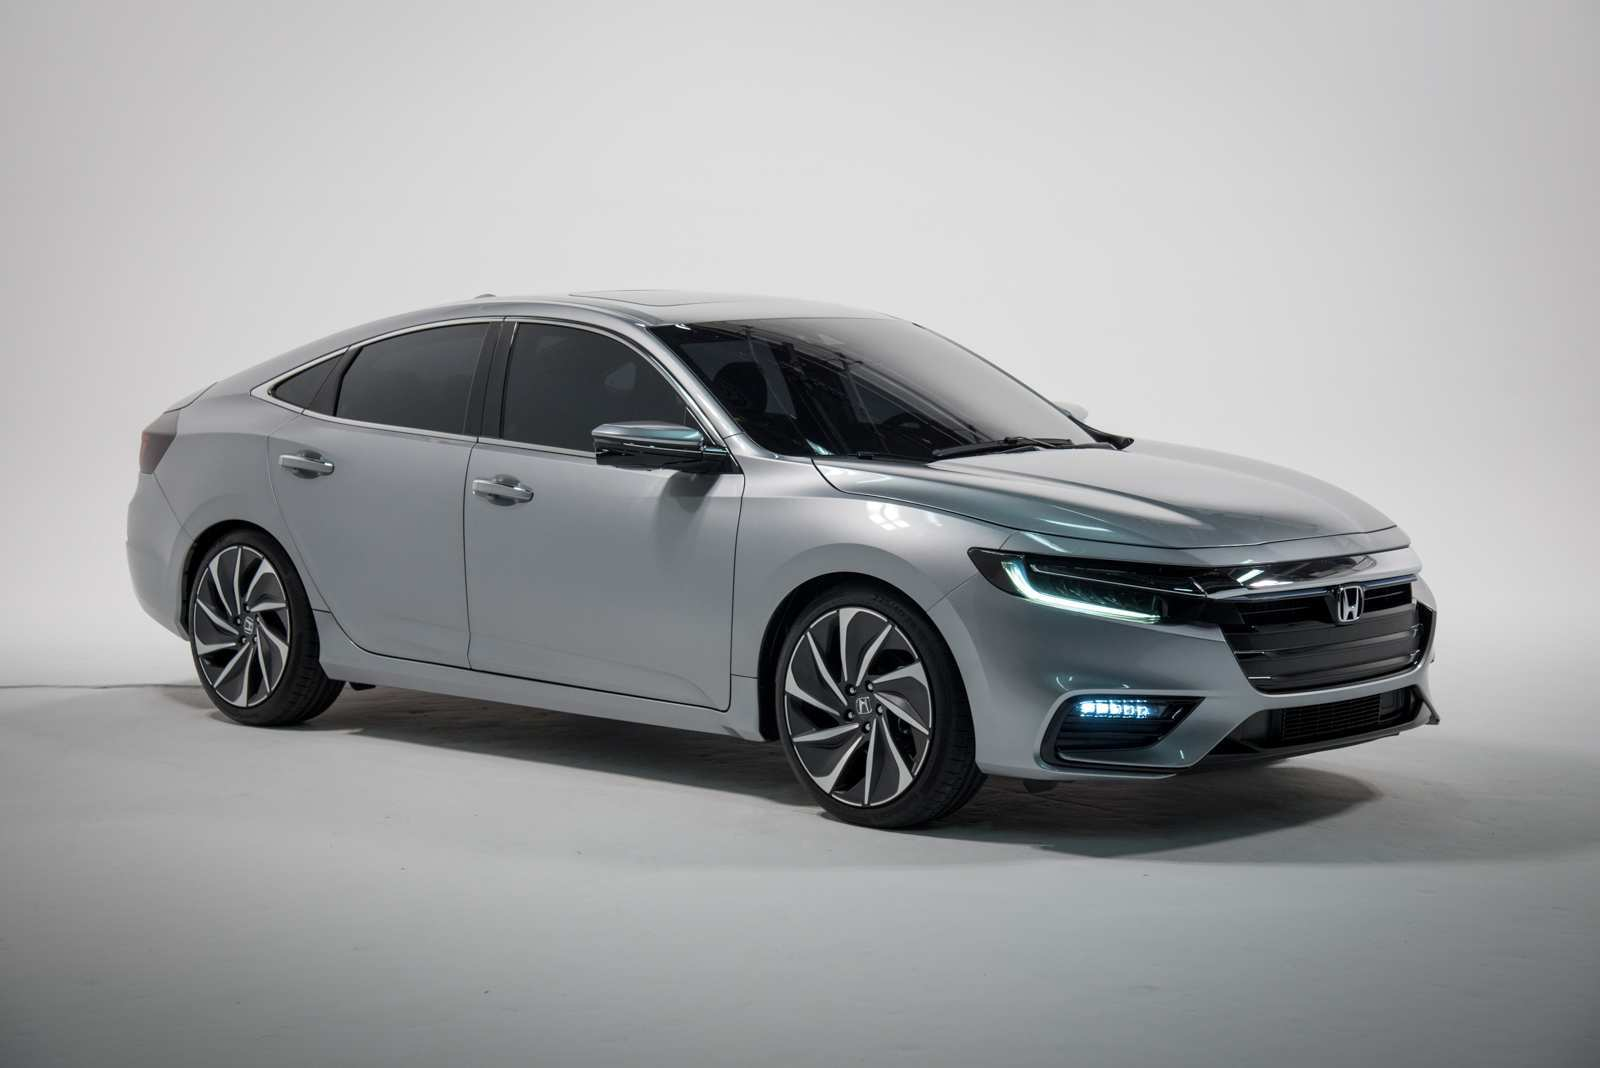 42 New 2019 Honda Insight Exterior And Interior